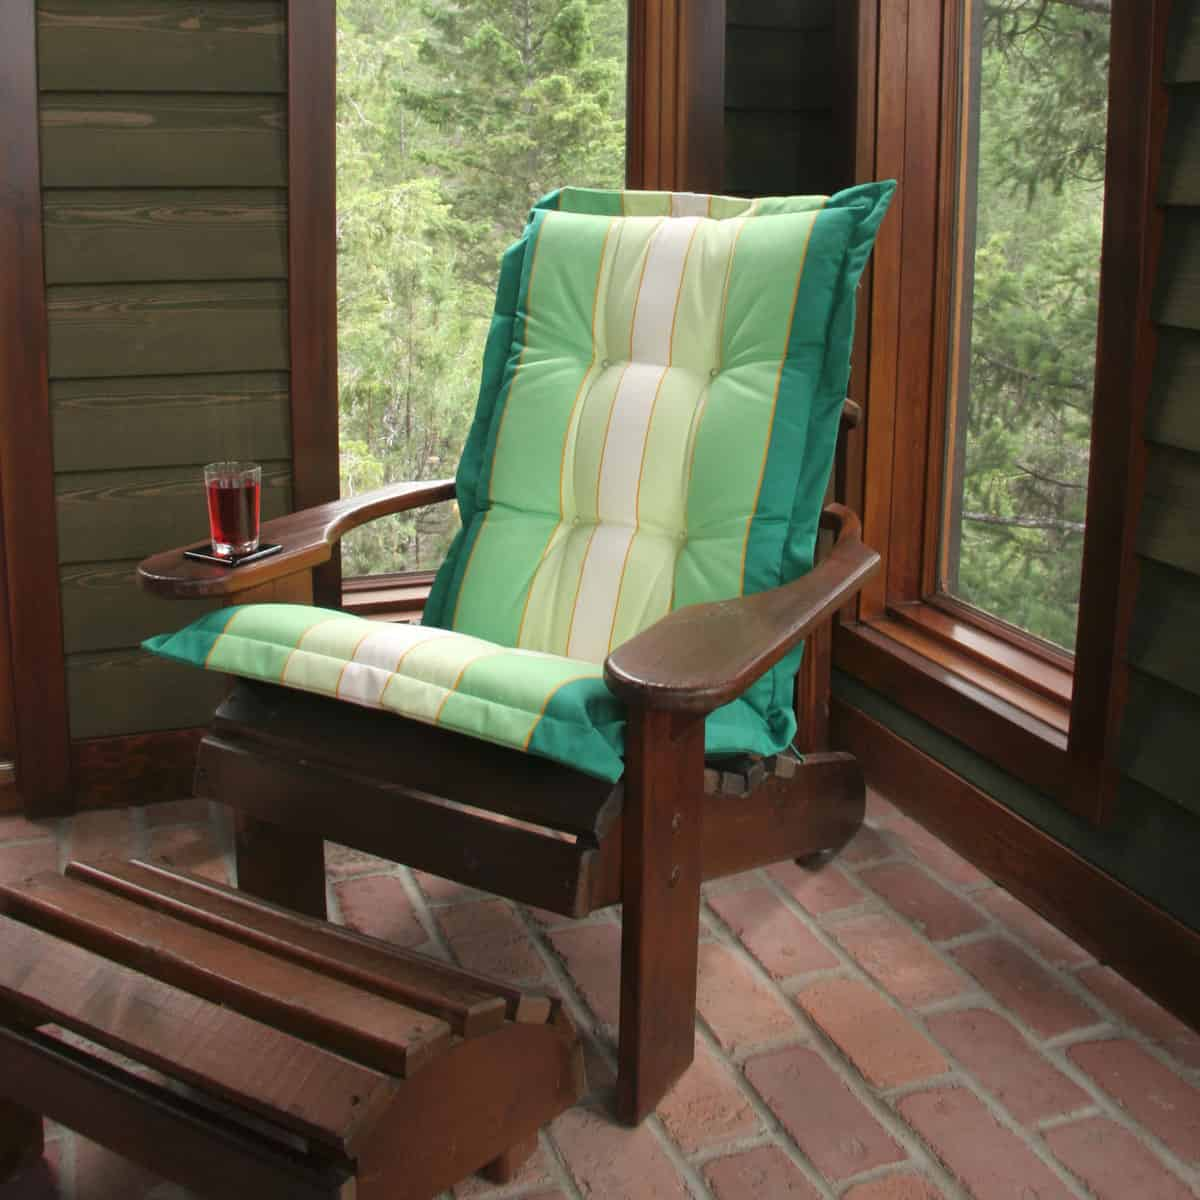 A small wooden chair with a pillow for comfort